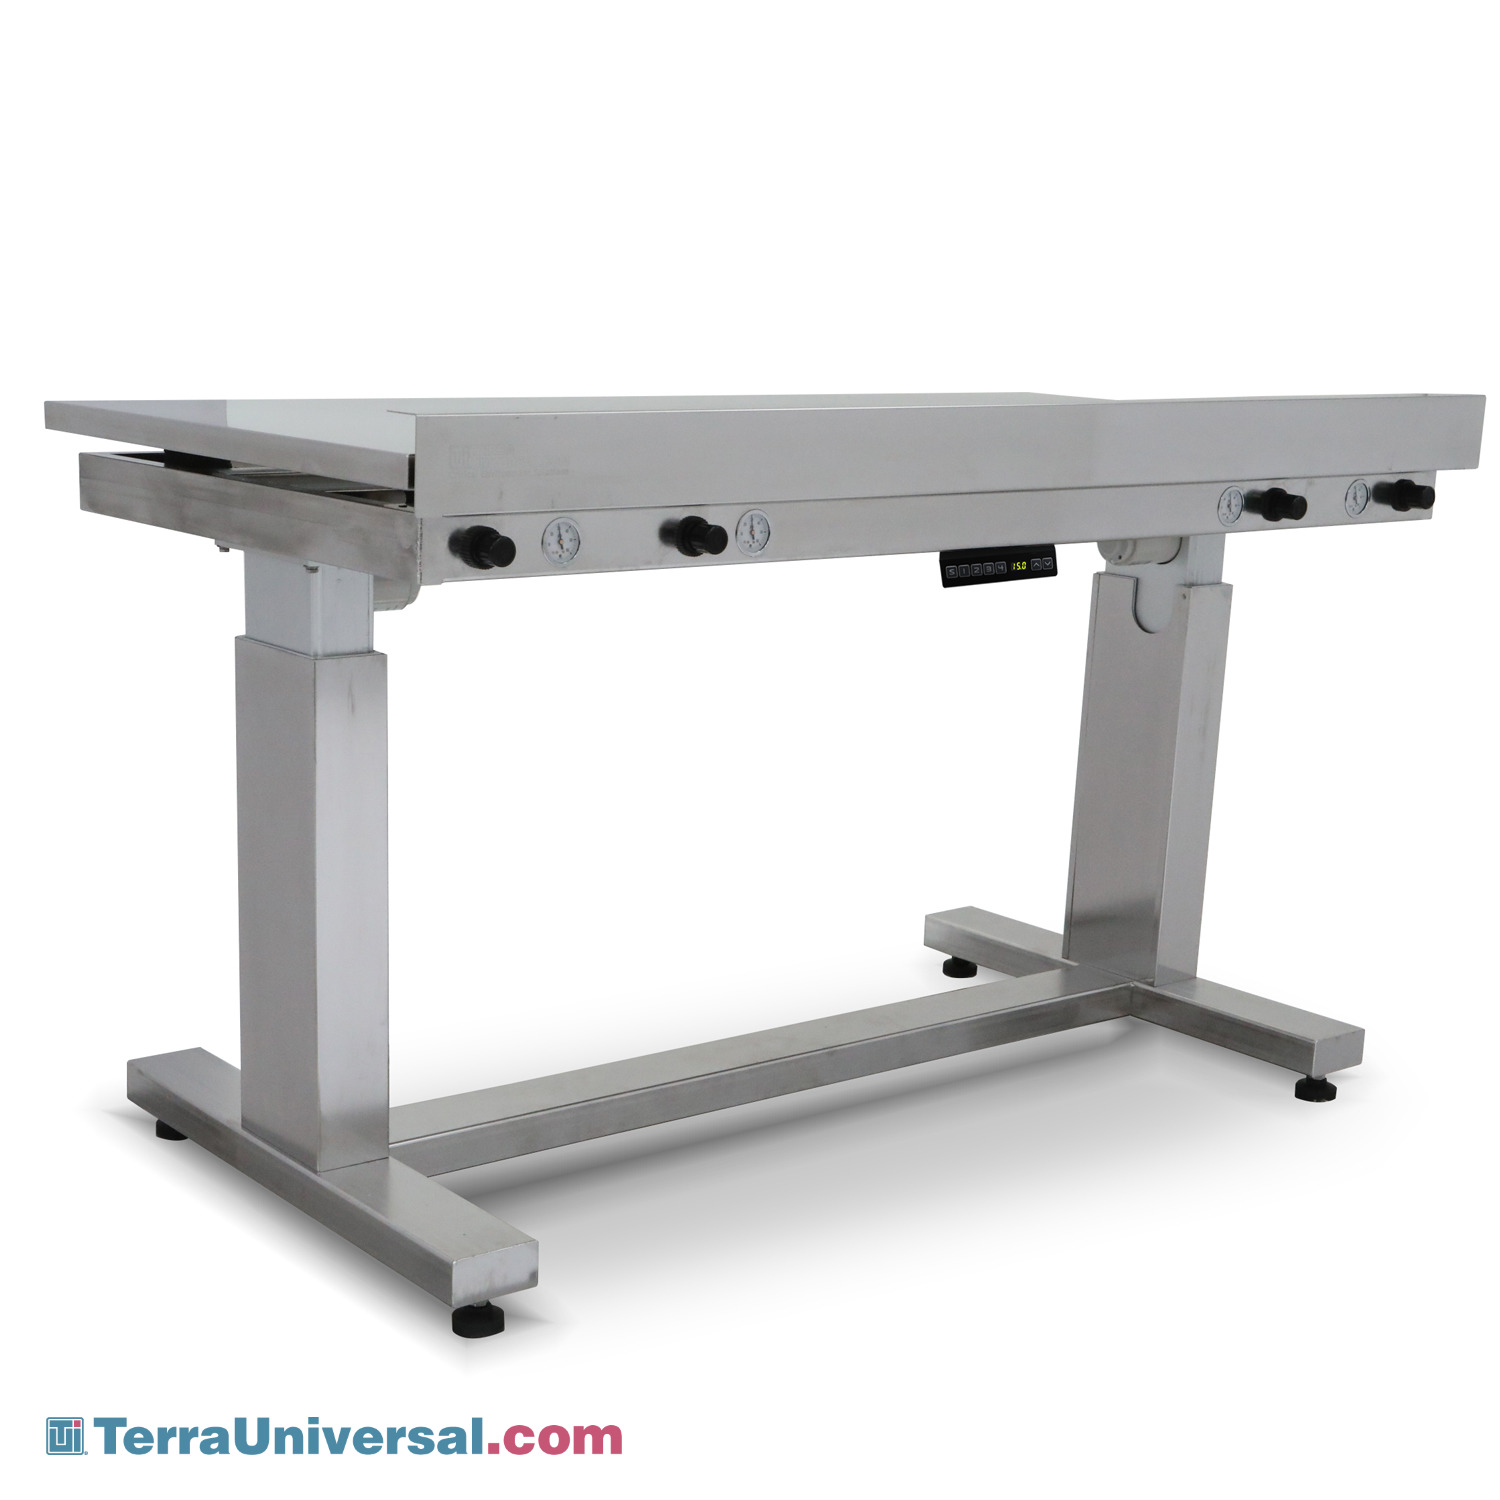 Vibration Isolation Workstations Tables And Benches